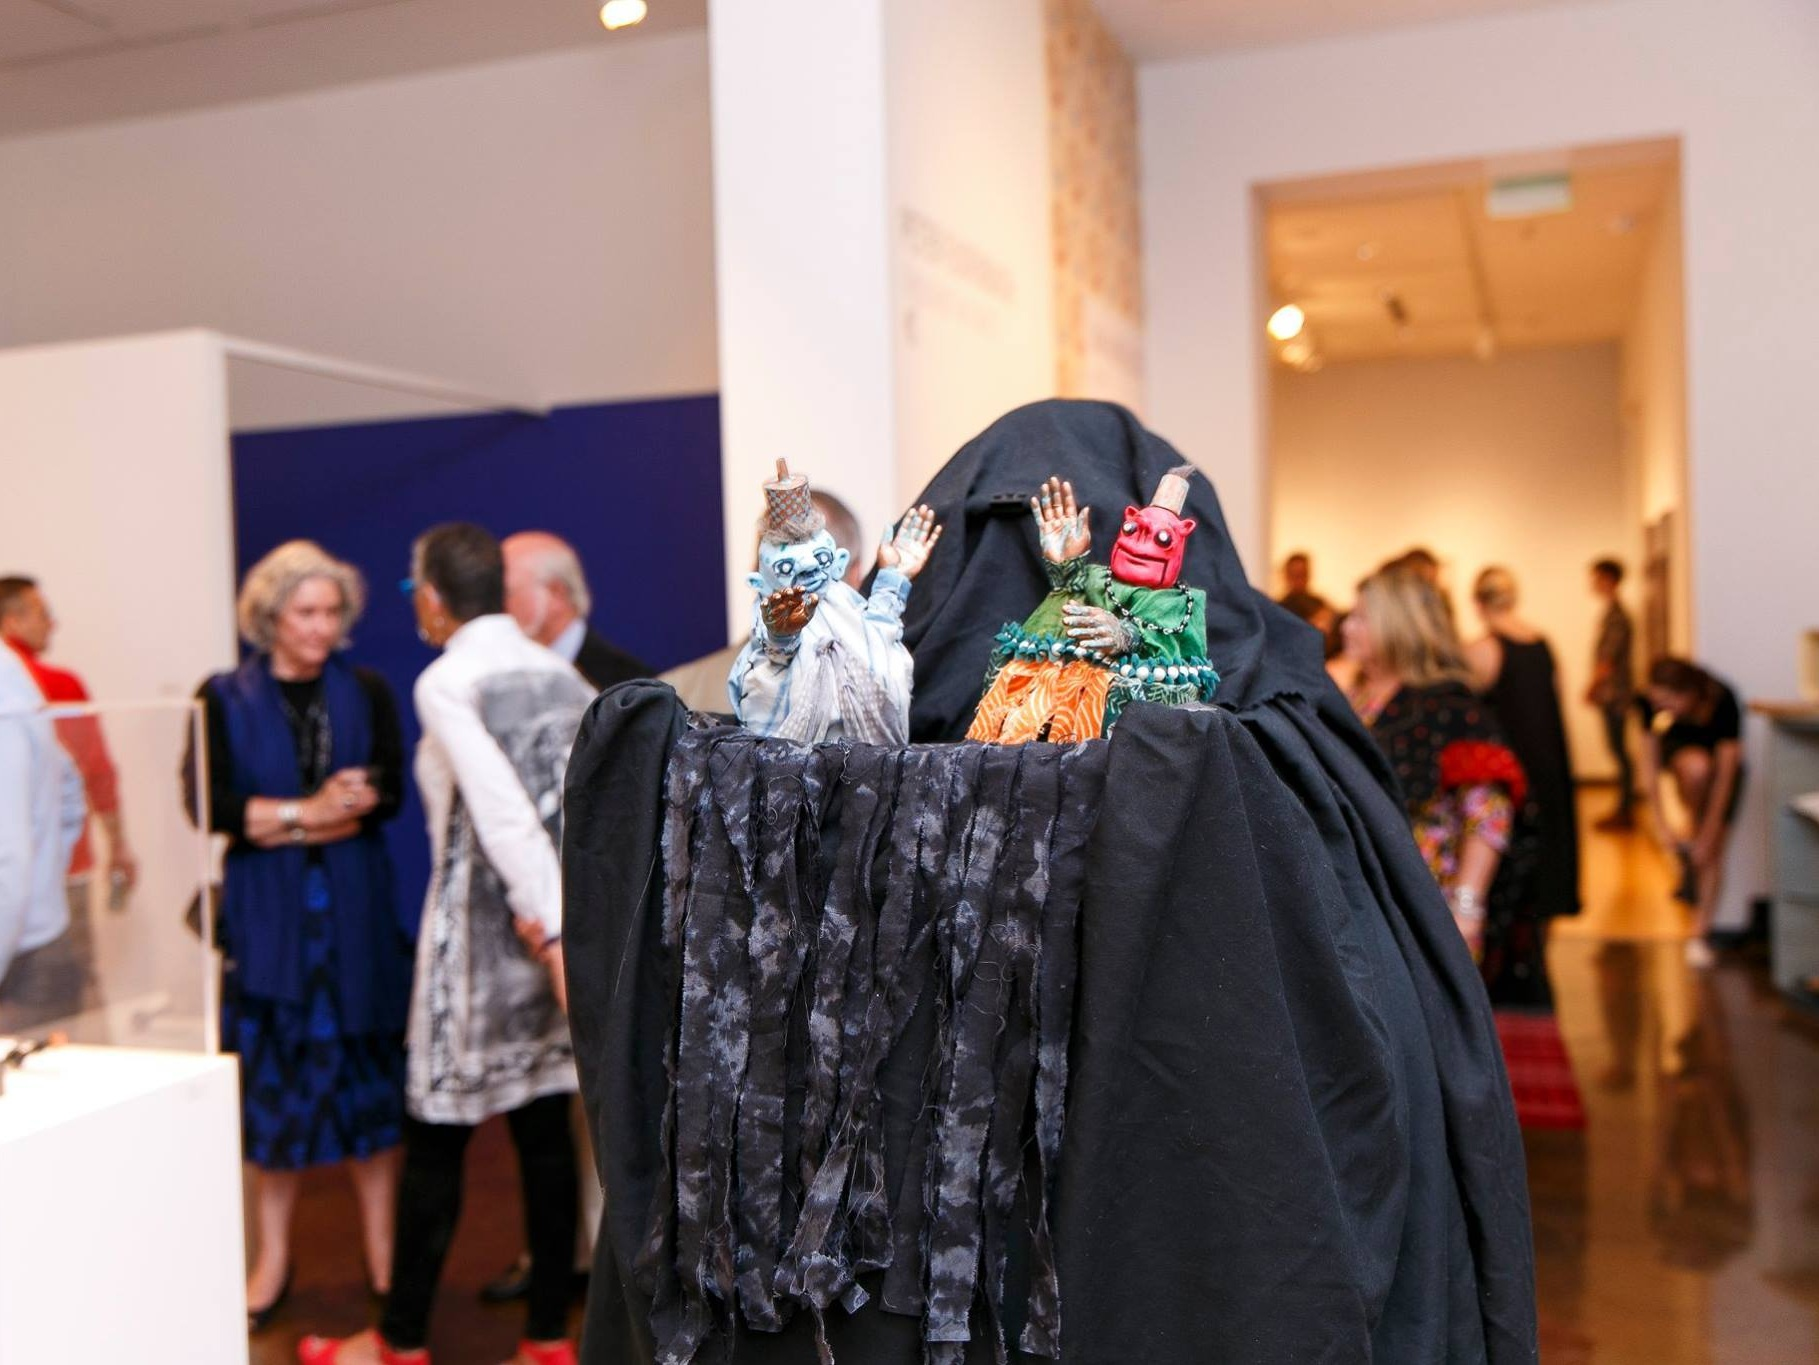 The Moon Kings at The Halsey Gallery's annual Moon Party, Charleston, SC. 2016 - Part of the Charleston Guild of Puppeteers entertaining guests at a fundraising event. This walkabout hand puppet stage is inspired by an antique Chinese street performer design.